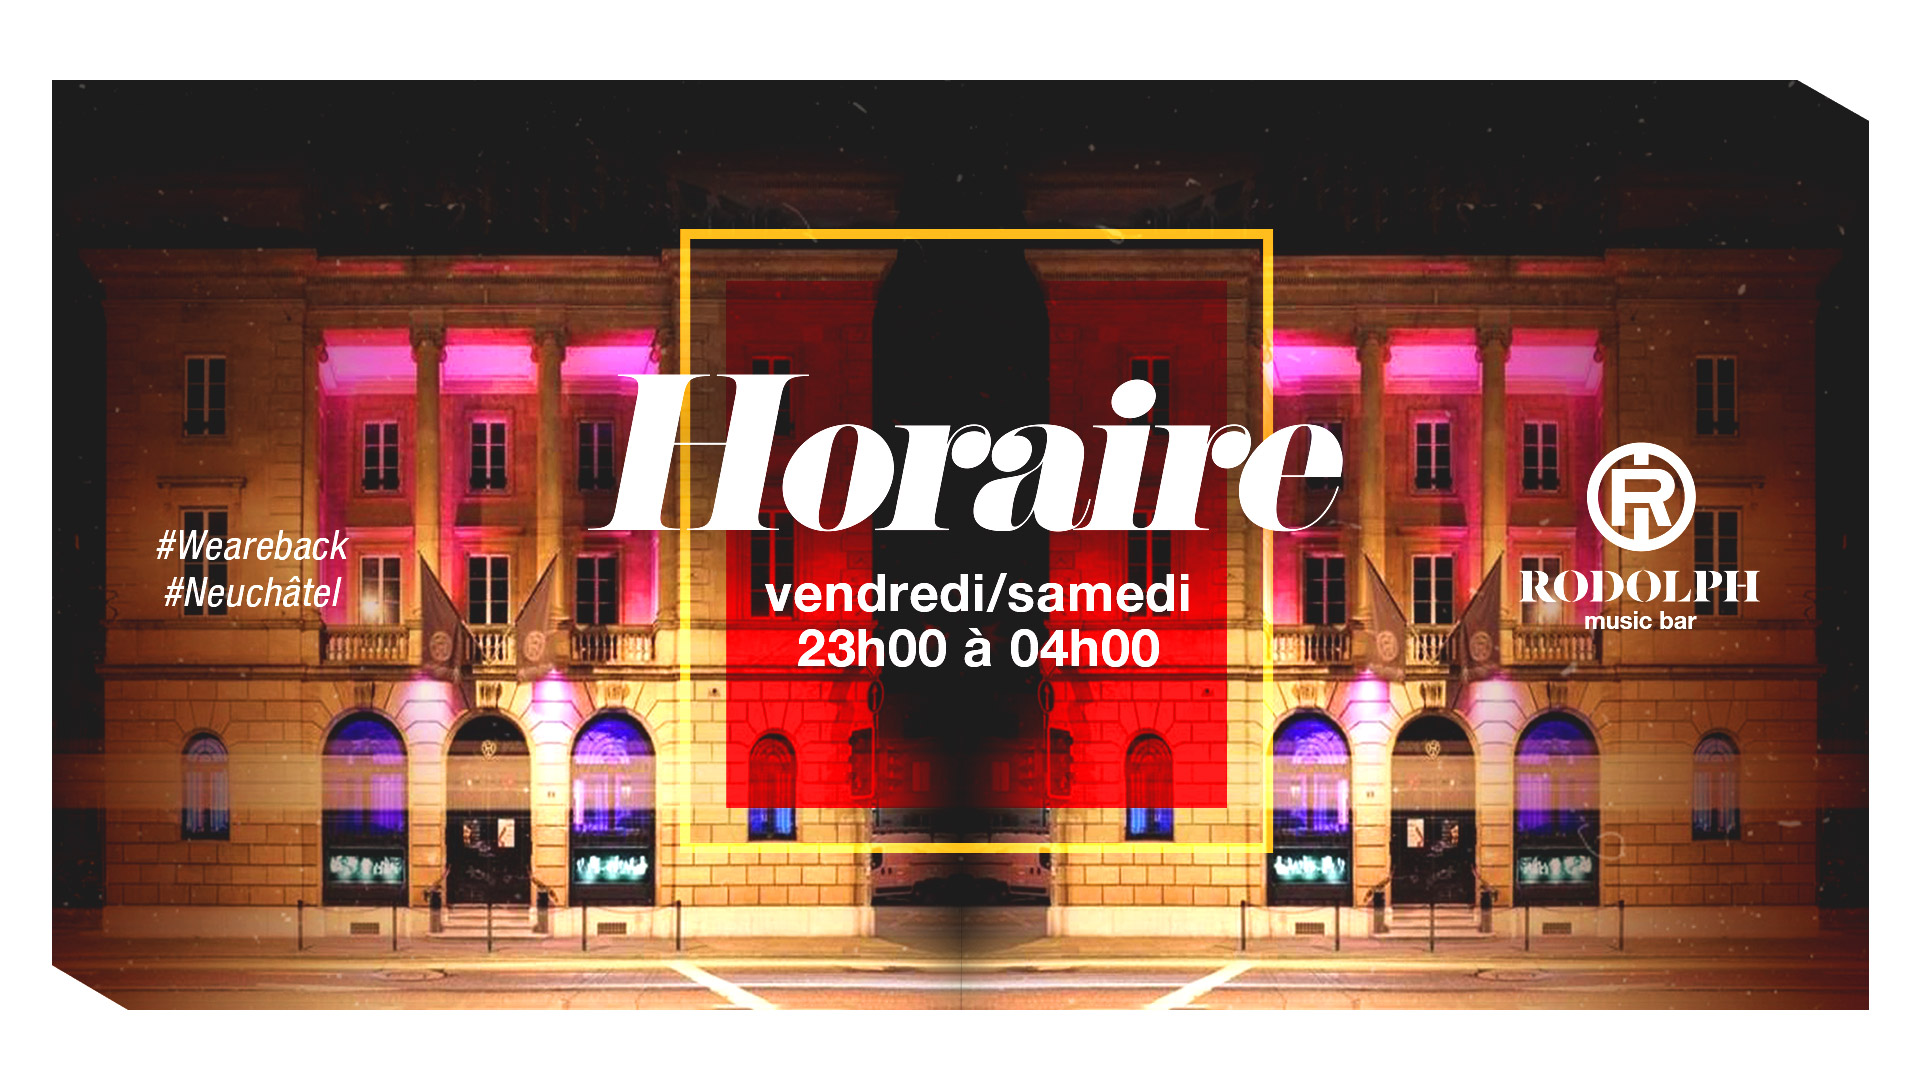 Rod-Horaire-EVENT